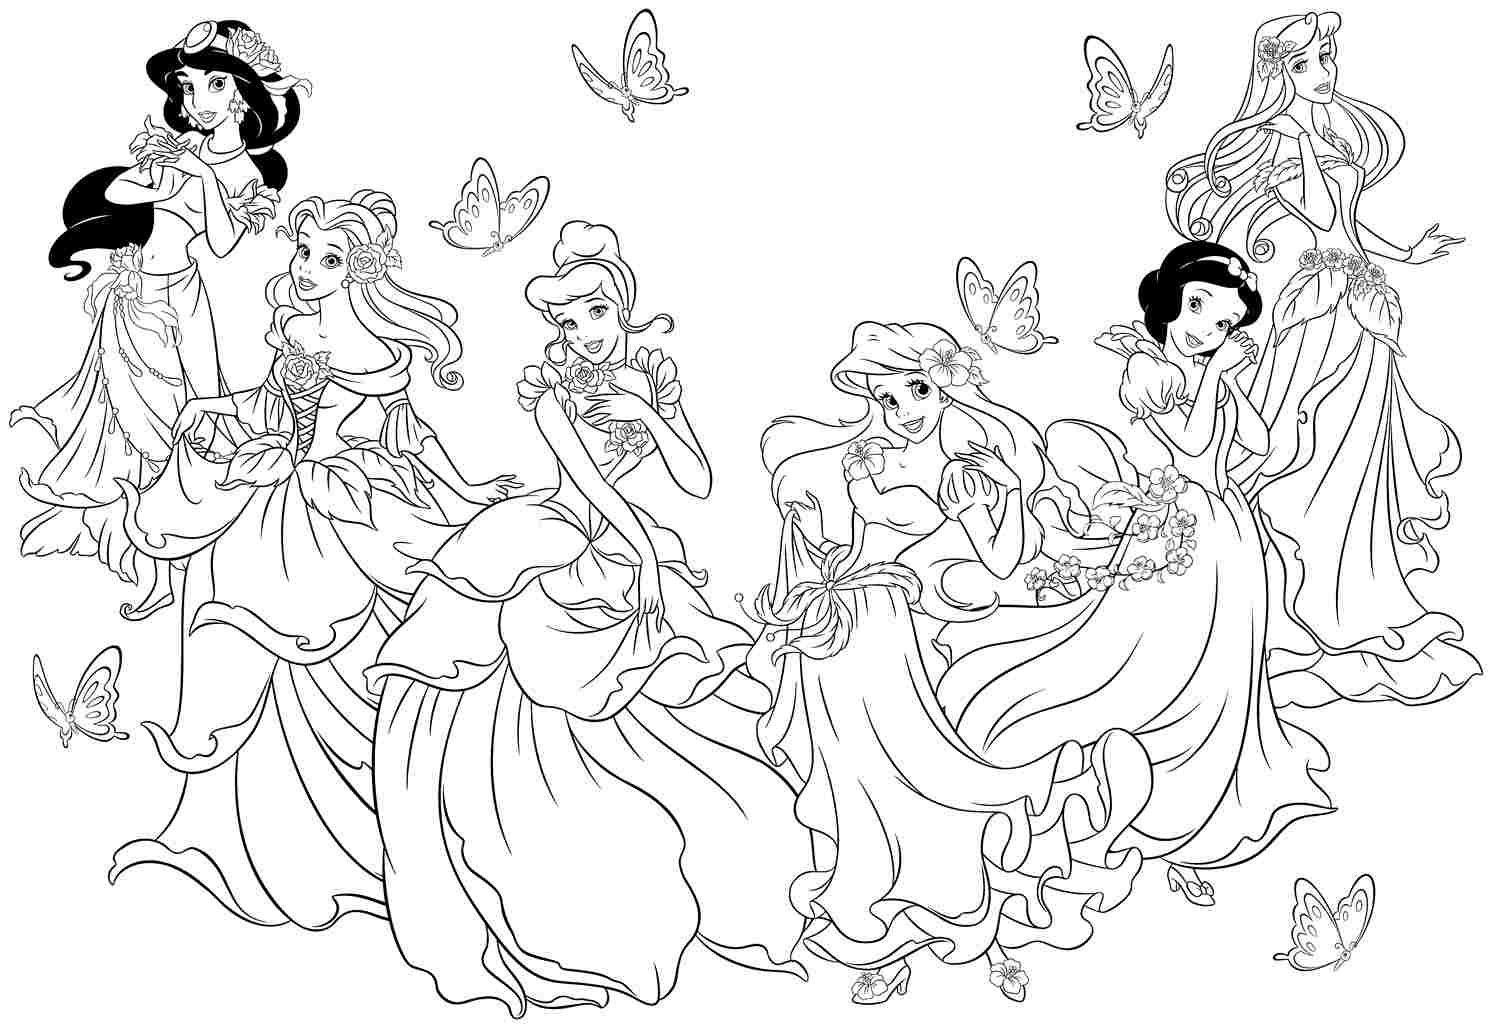 Disney princess christmas coloring pages free - Explore Free Colouring Pages And More Disney Princess Christmas Coloring Pages